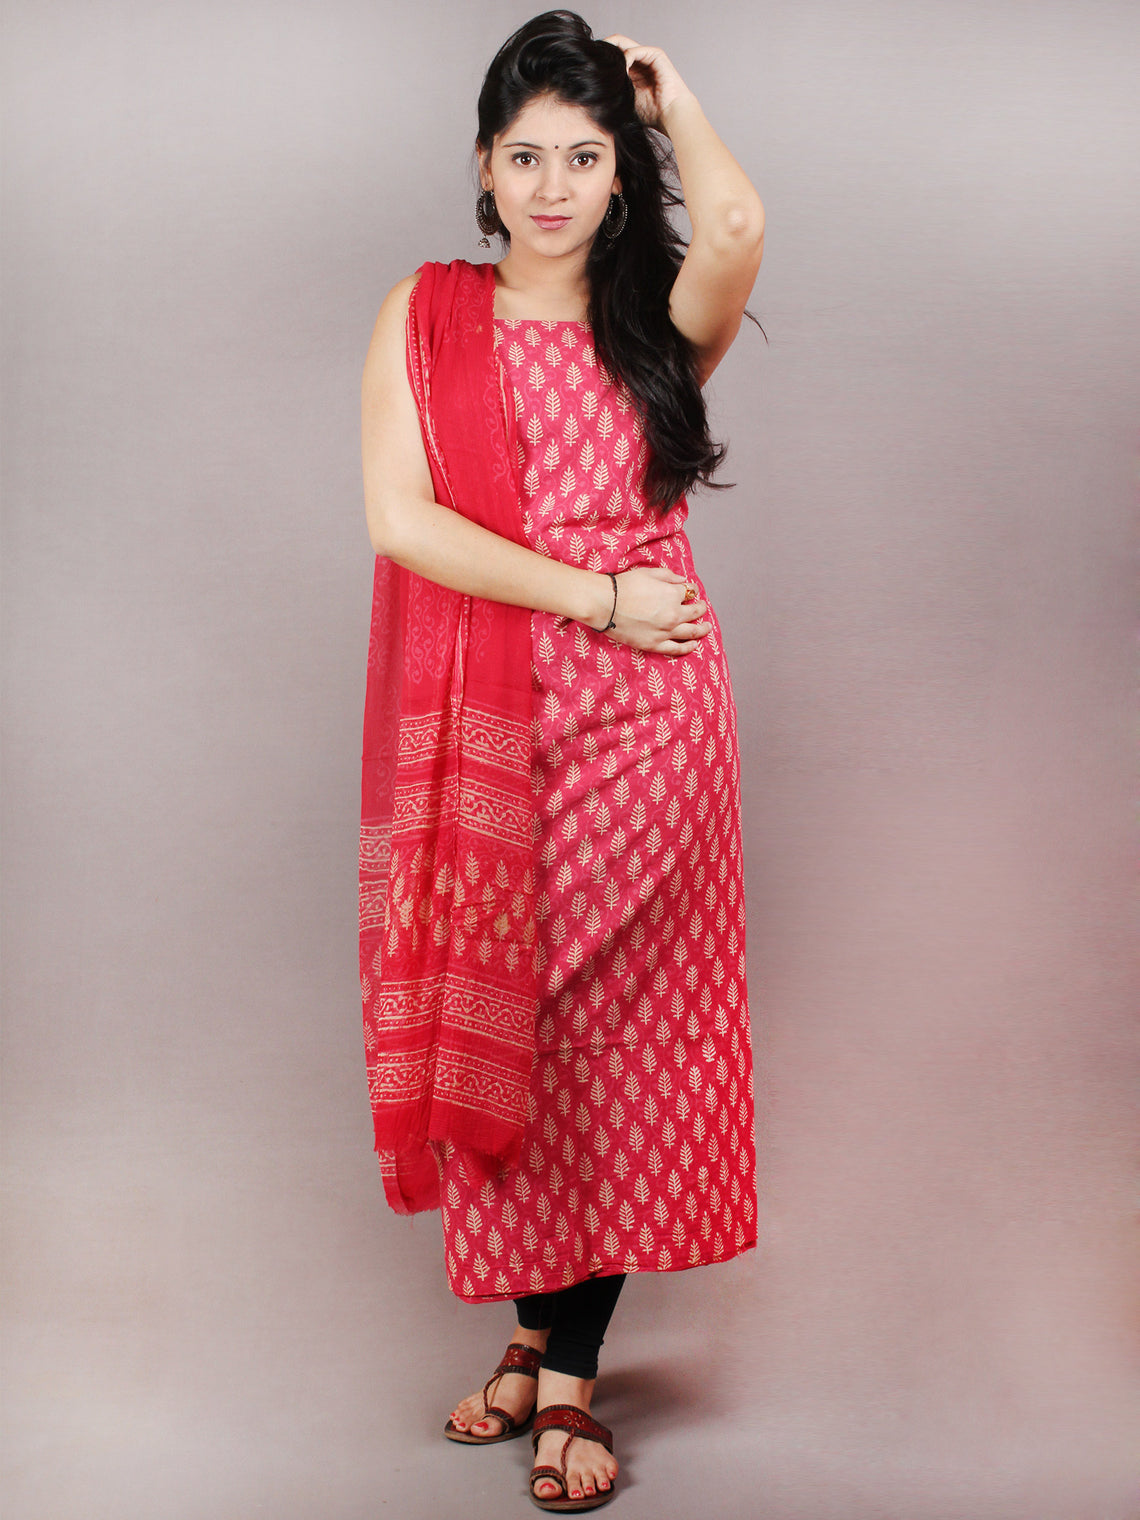 Rose Pink Beige Hand Block Printed Cotton Suit-Salwar Fabric With Chiffon Dupatta - S1628077